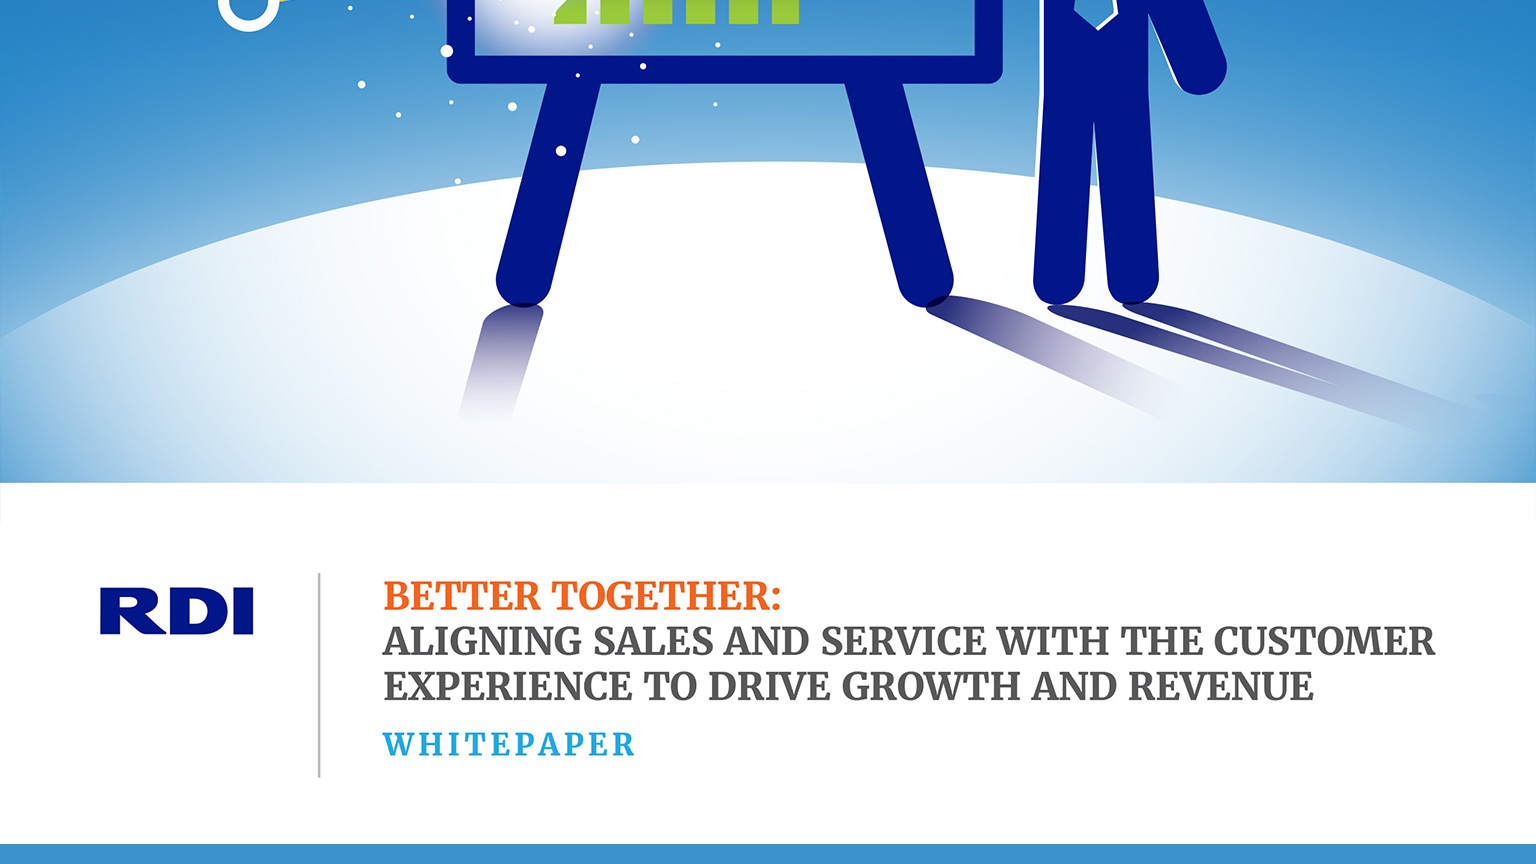 Better Together: Aligning Sales and Service With the Customer Experience to Drive Growth and Revenue